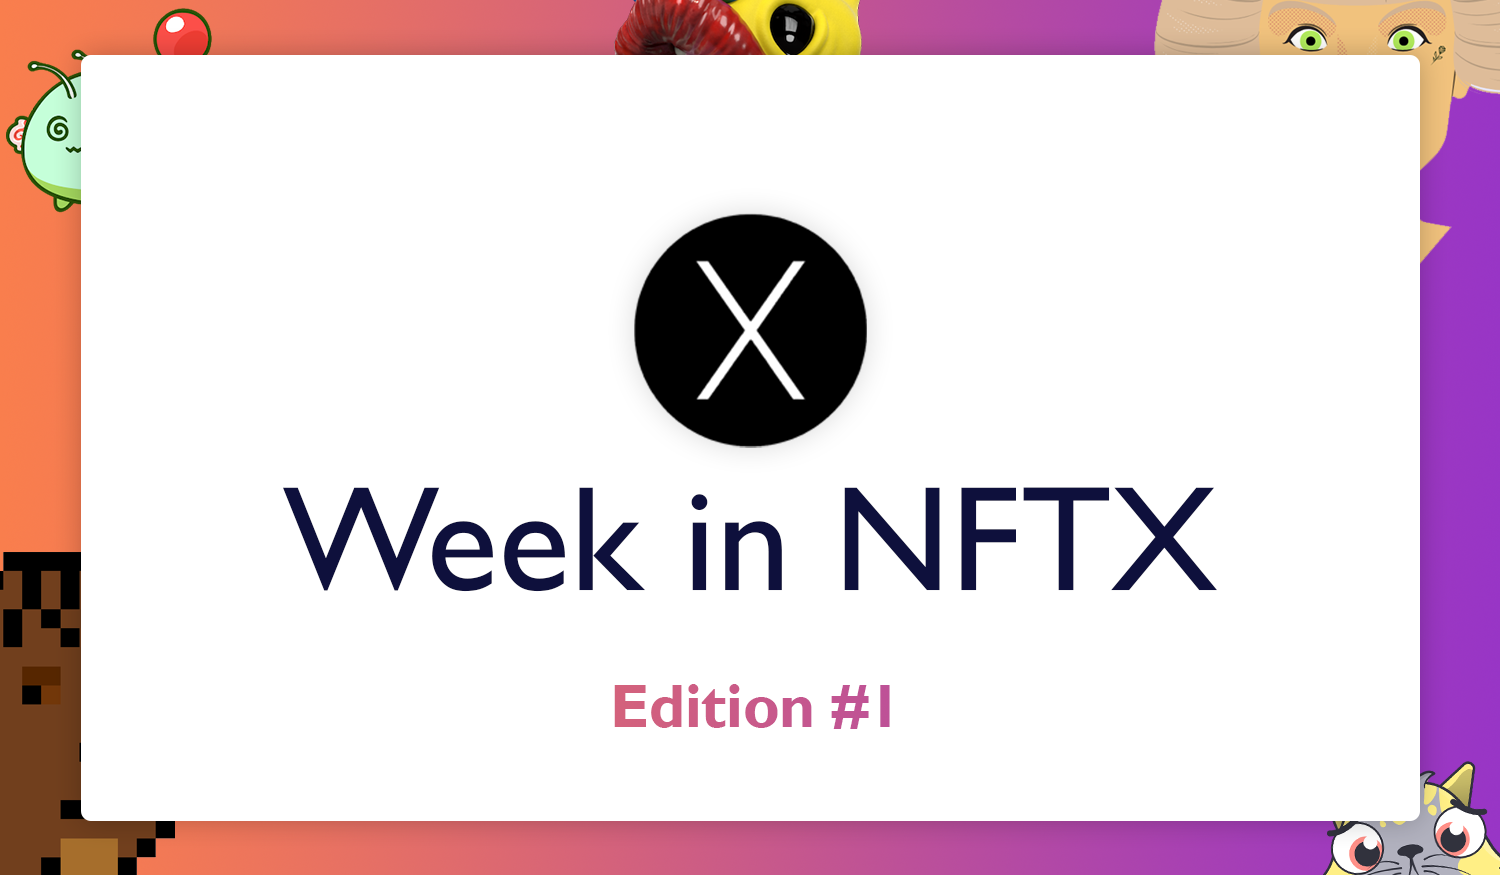 NFTX Weekly Round-Up #1